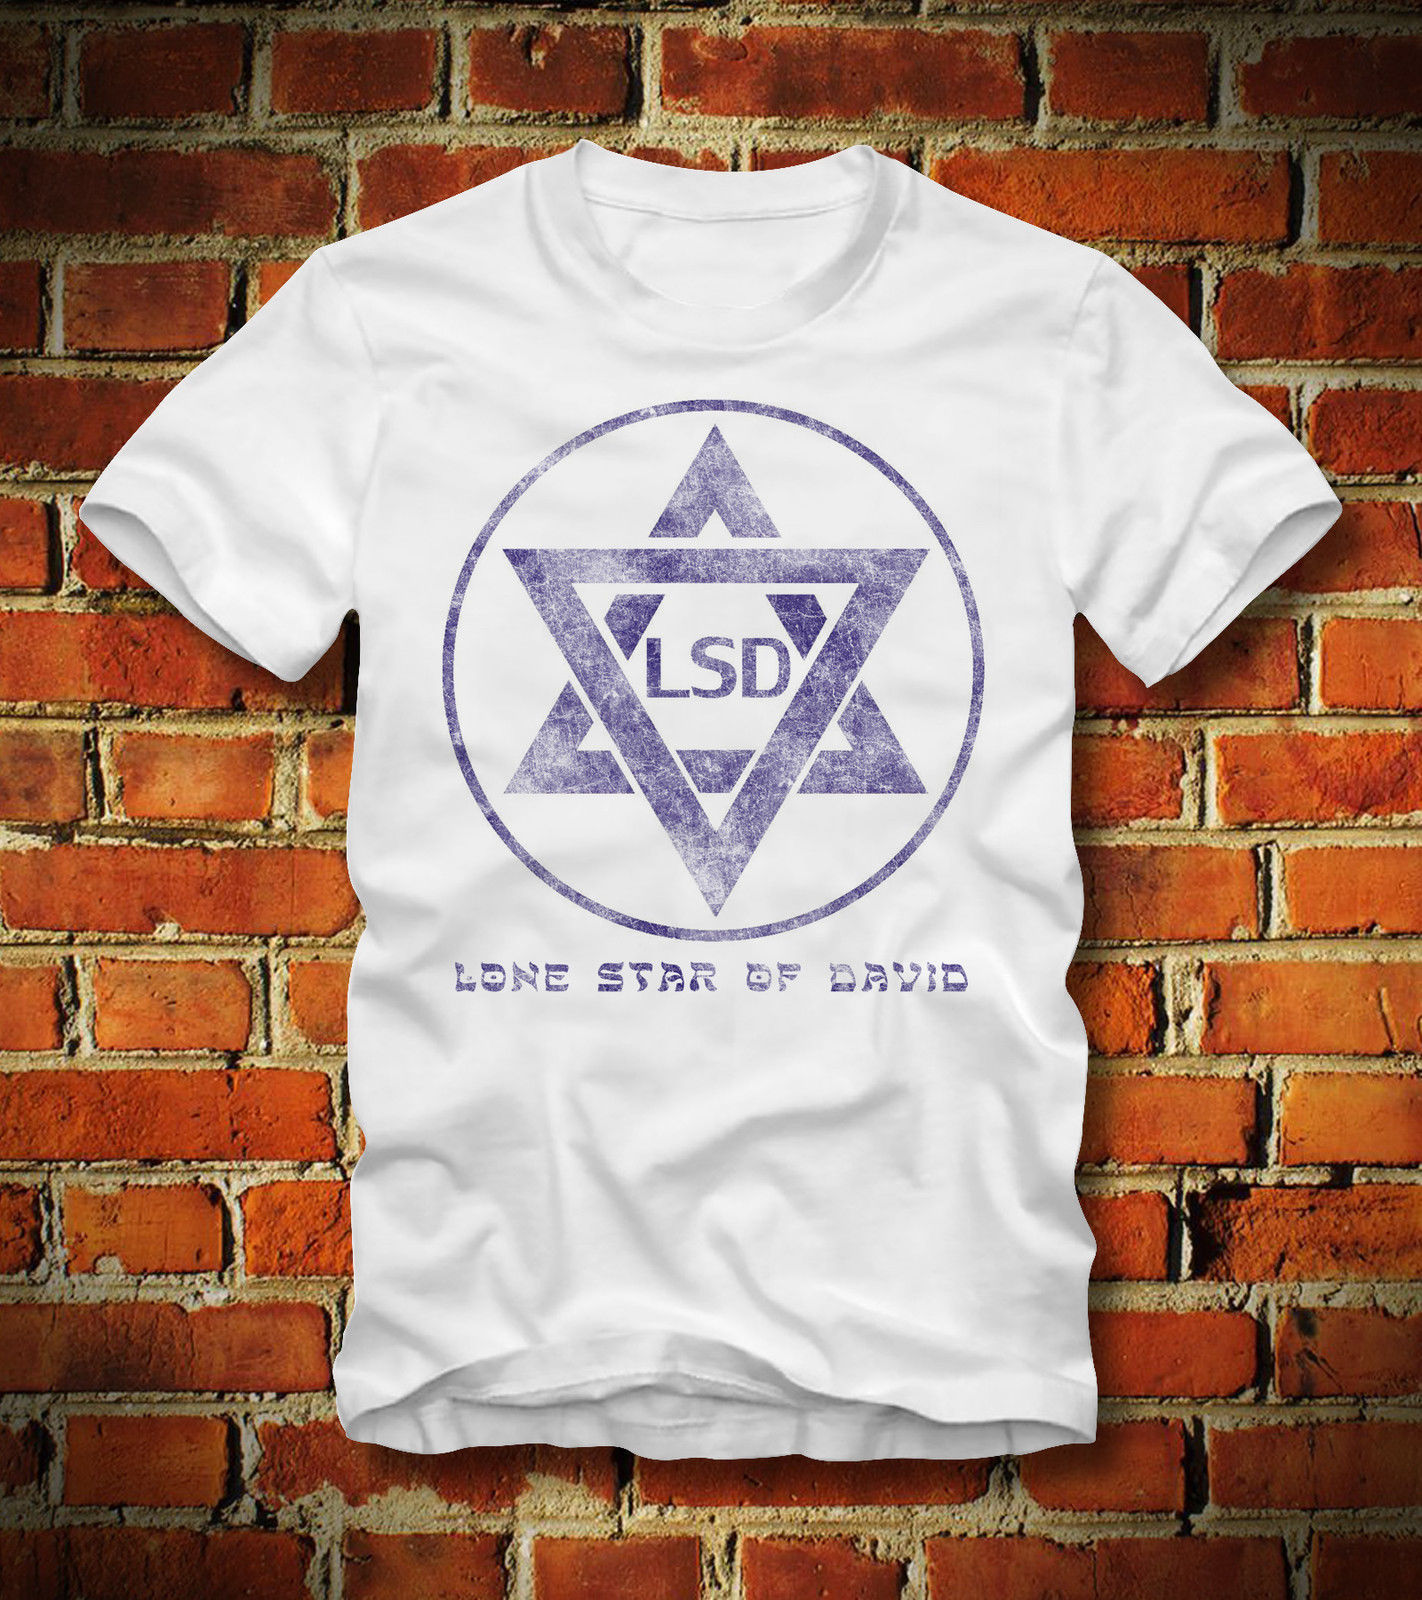 Fashion 100% Cotton Hot Sale Summer <font><b>T</b></font> <font><b>Shirt</b></font> <font><b>Israel</b></font> Flag Lsd Lone Star Of David Stern Star Psychedelic Tee <font><b>Shirt</b></font> 033339 image